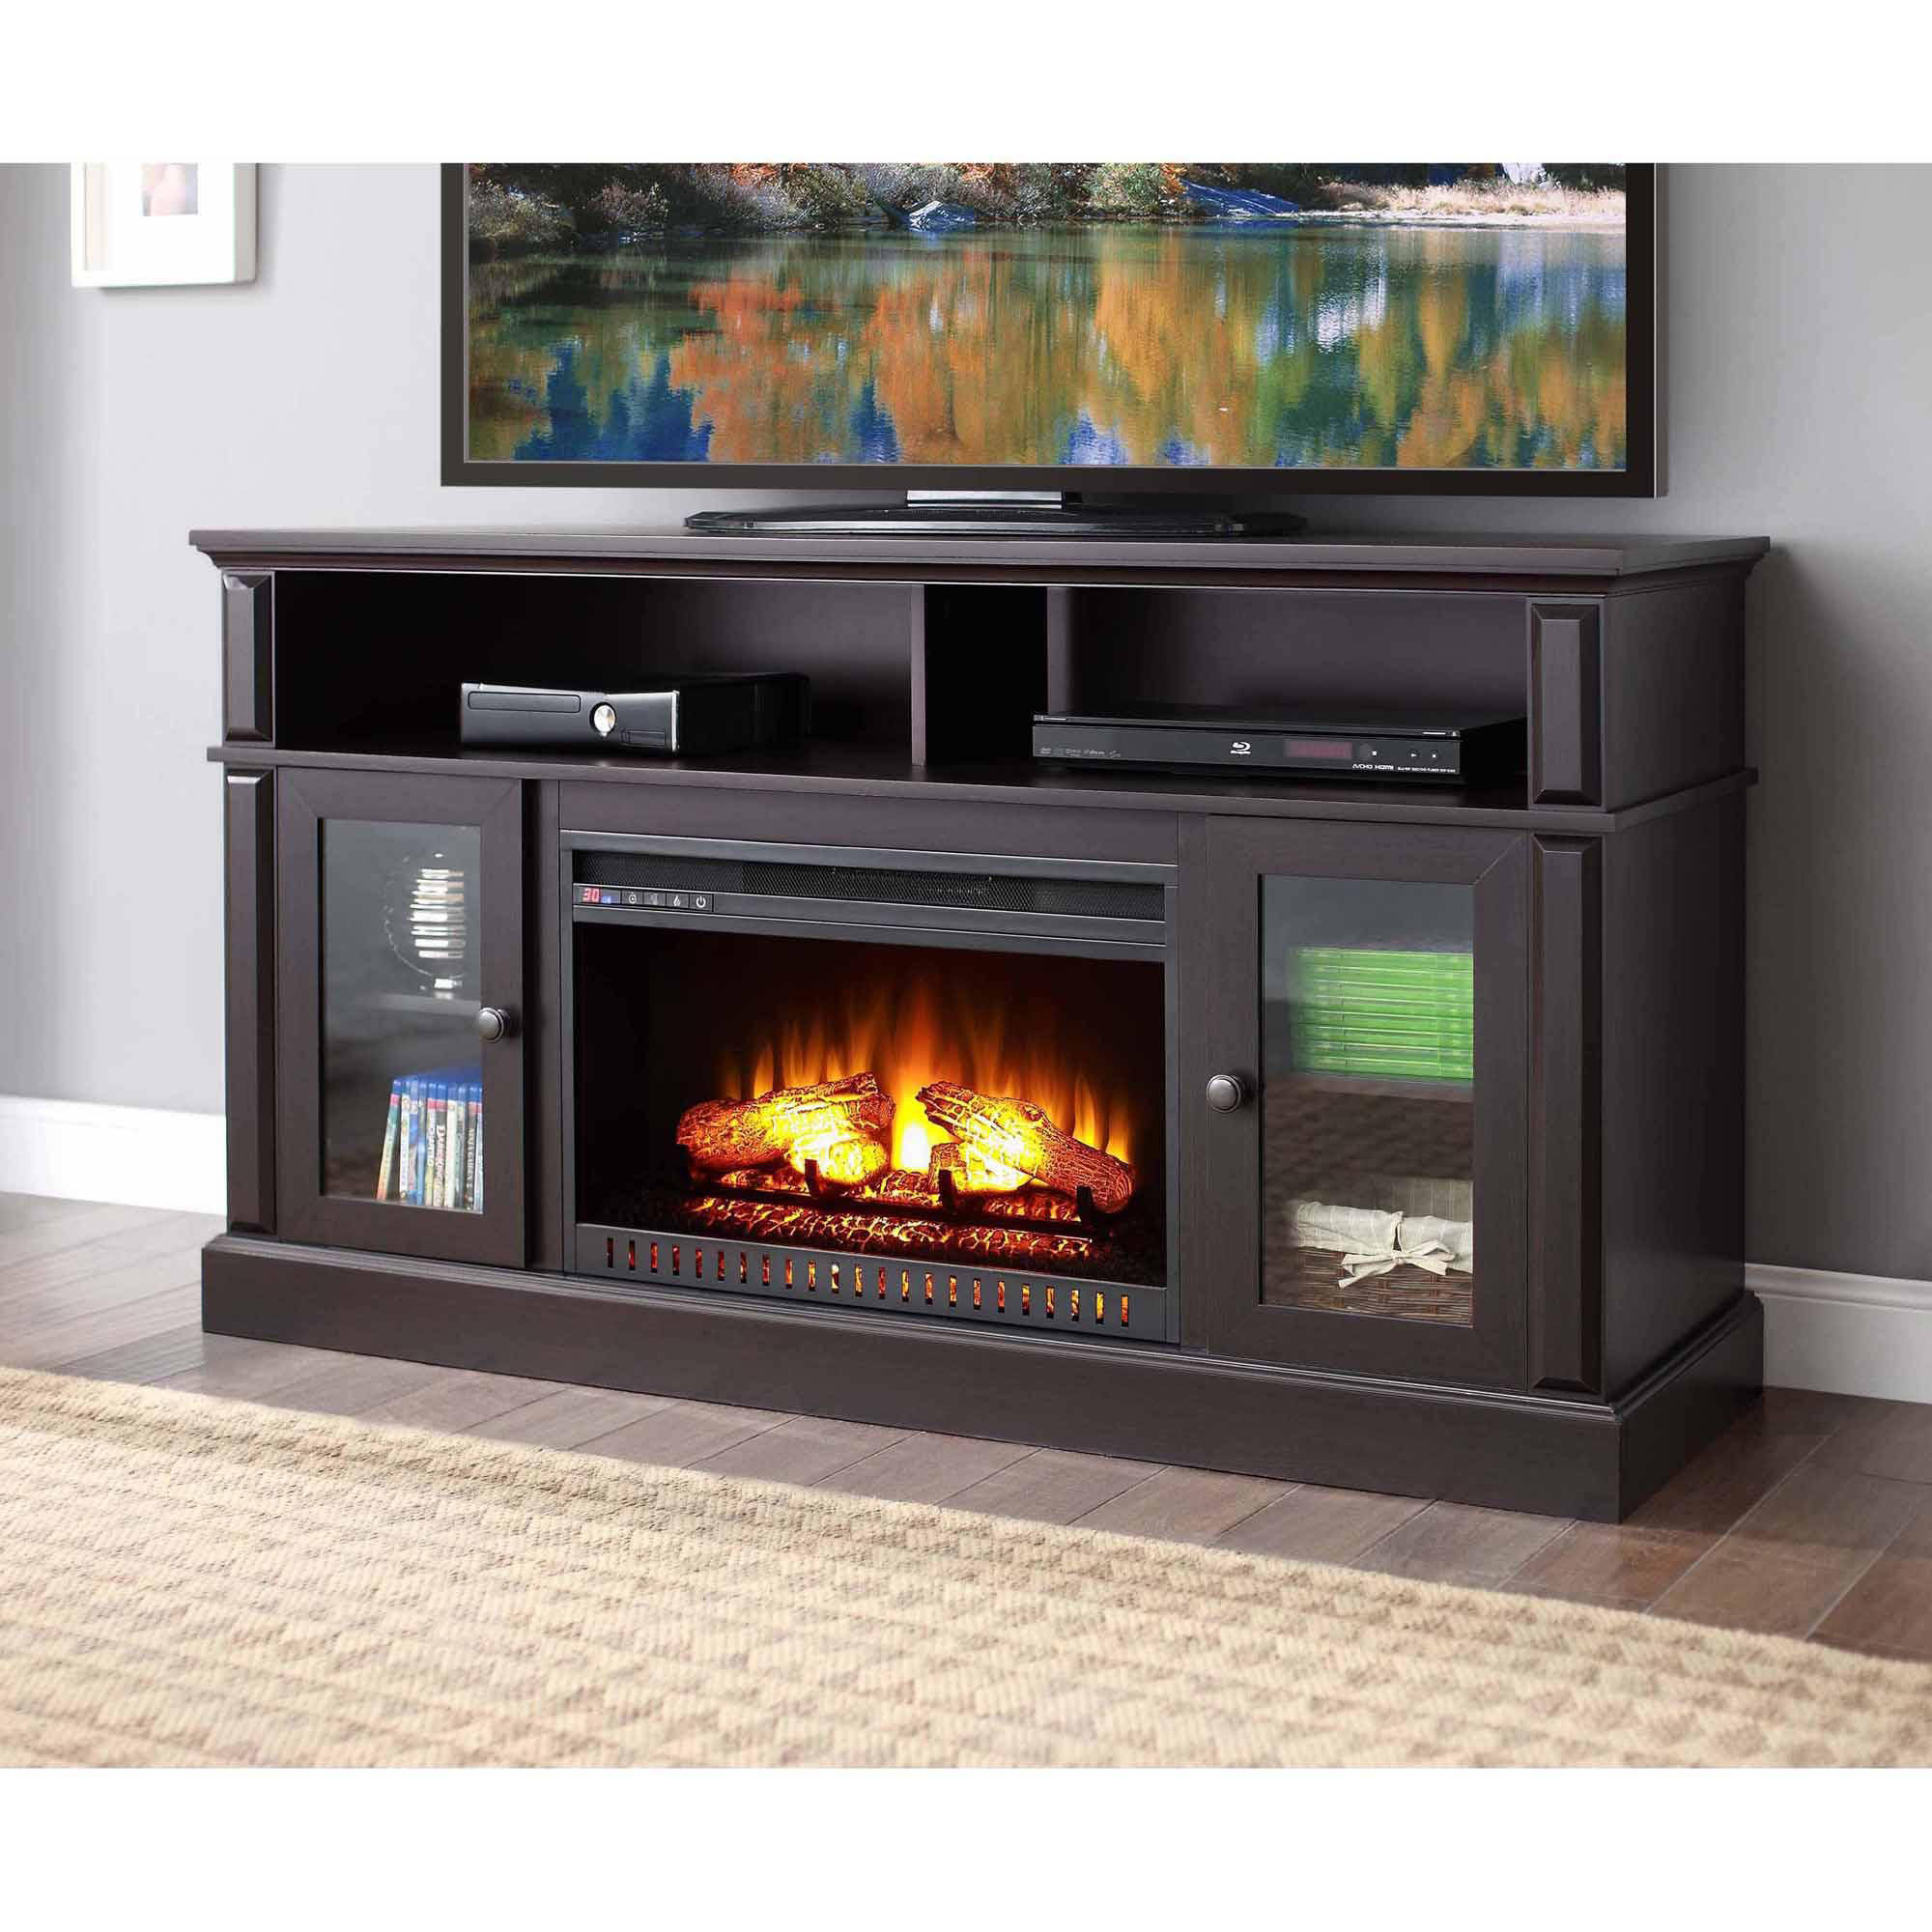 Electric Fireplaces For Sale At Walmart Homcom 14 In 1000 Watt Free Standing Electric Fireplace